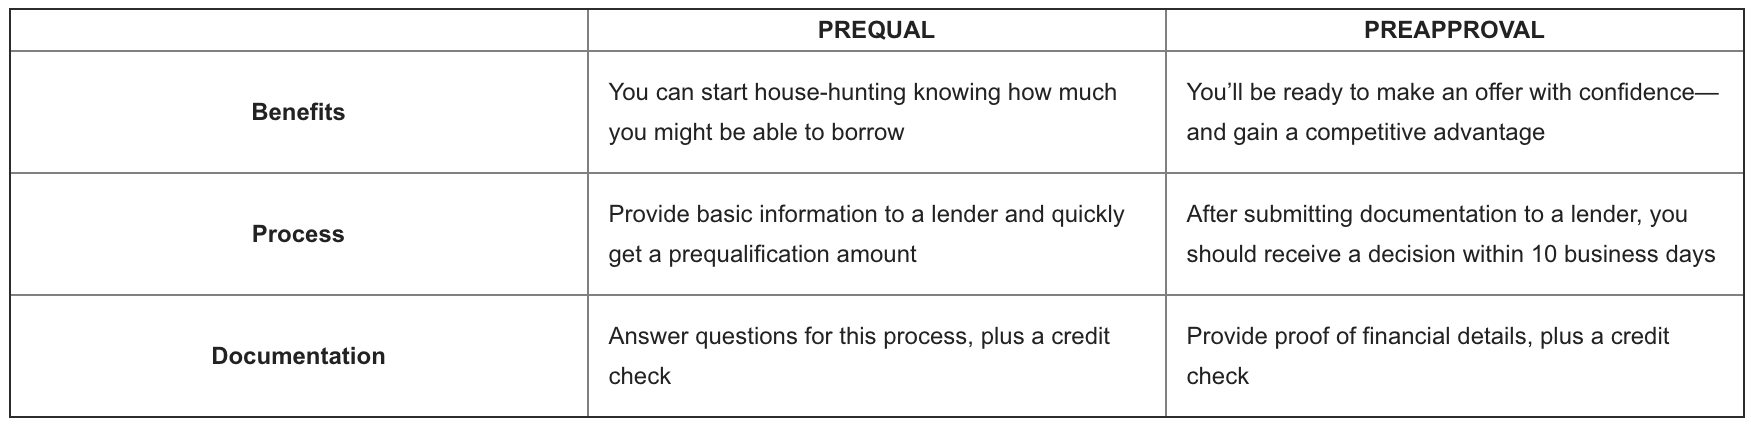 Prequal versus Preapproval